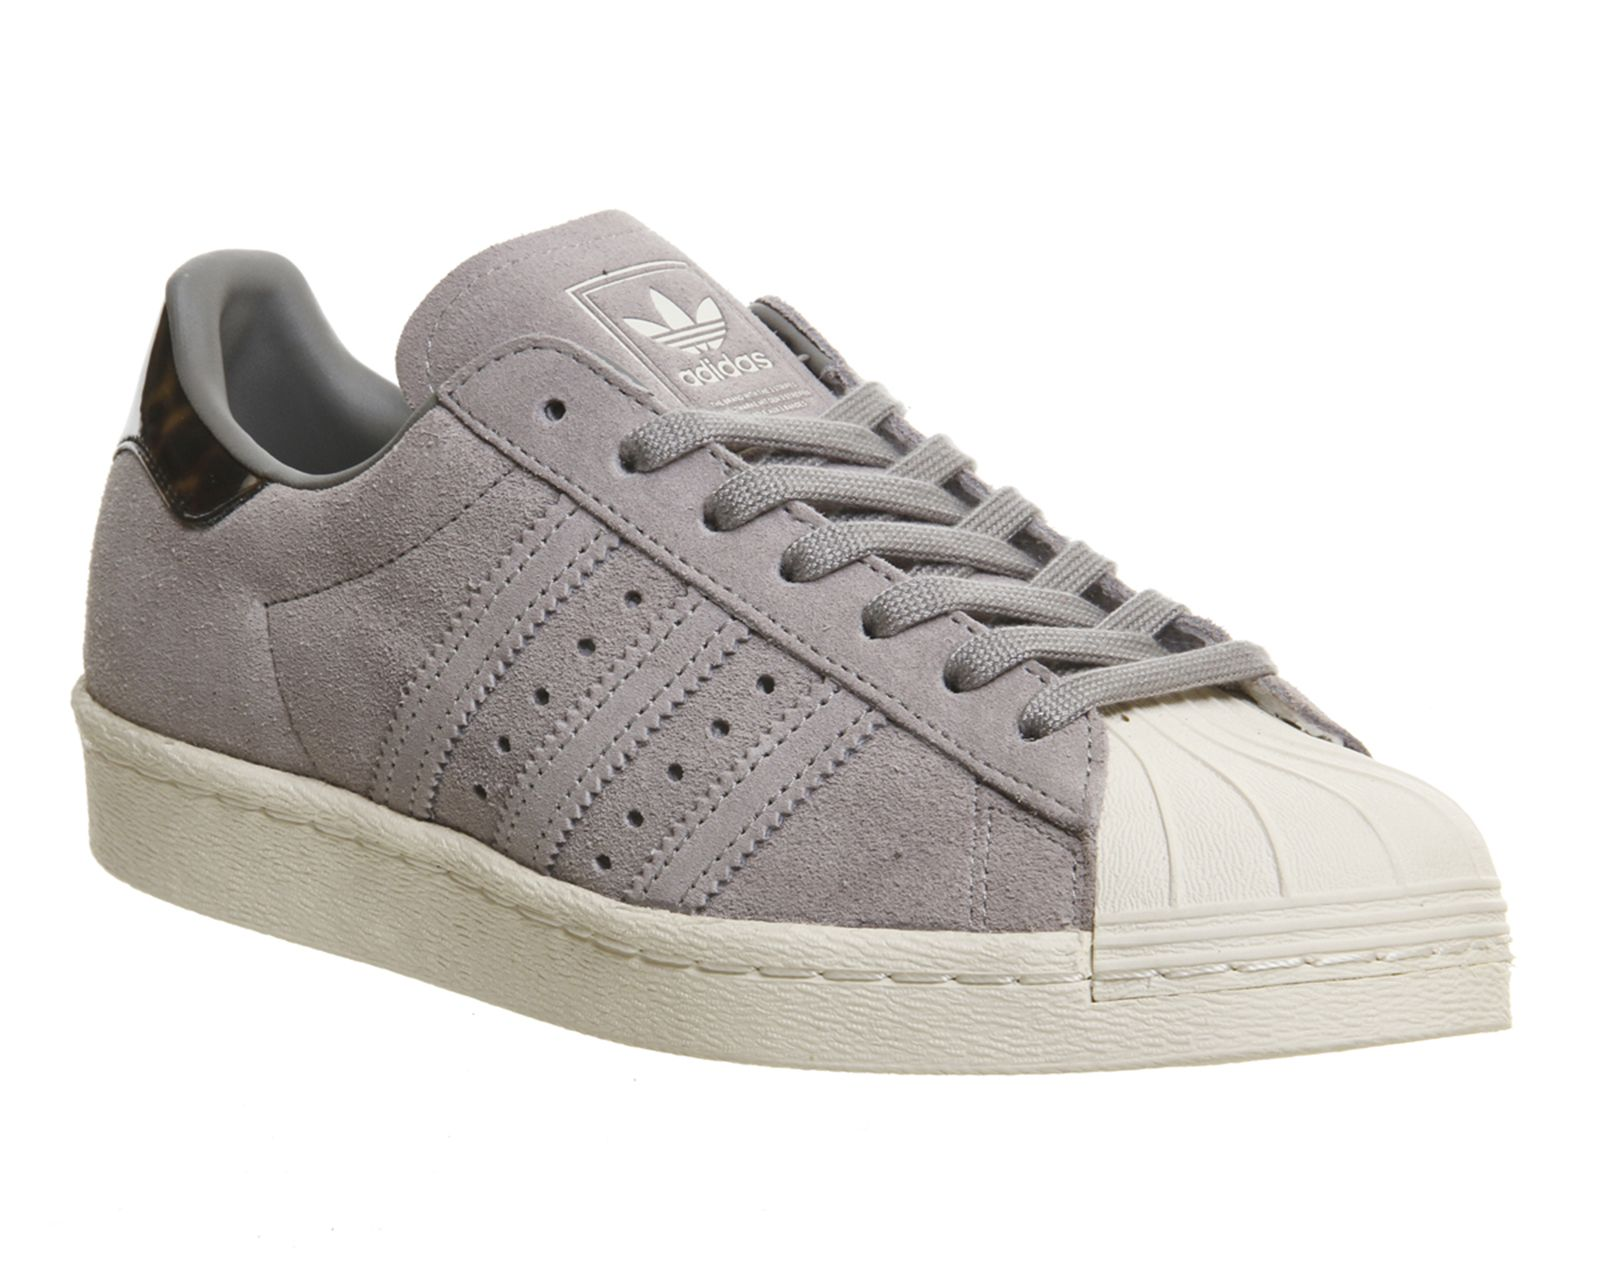 Superstar 80s | Adidas, Adidas sneakers, Adidas men